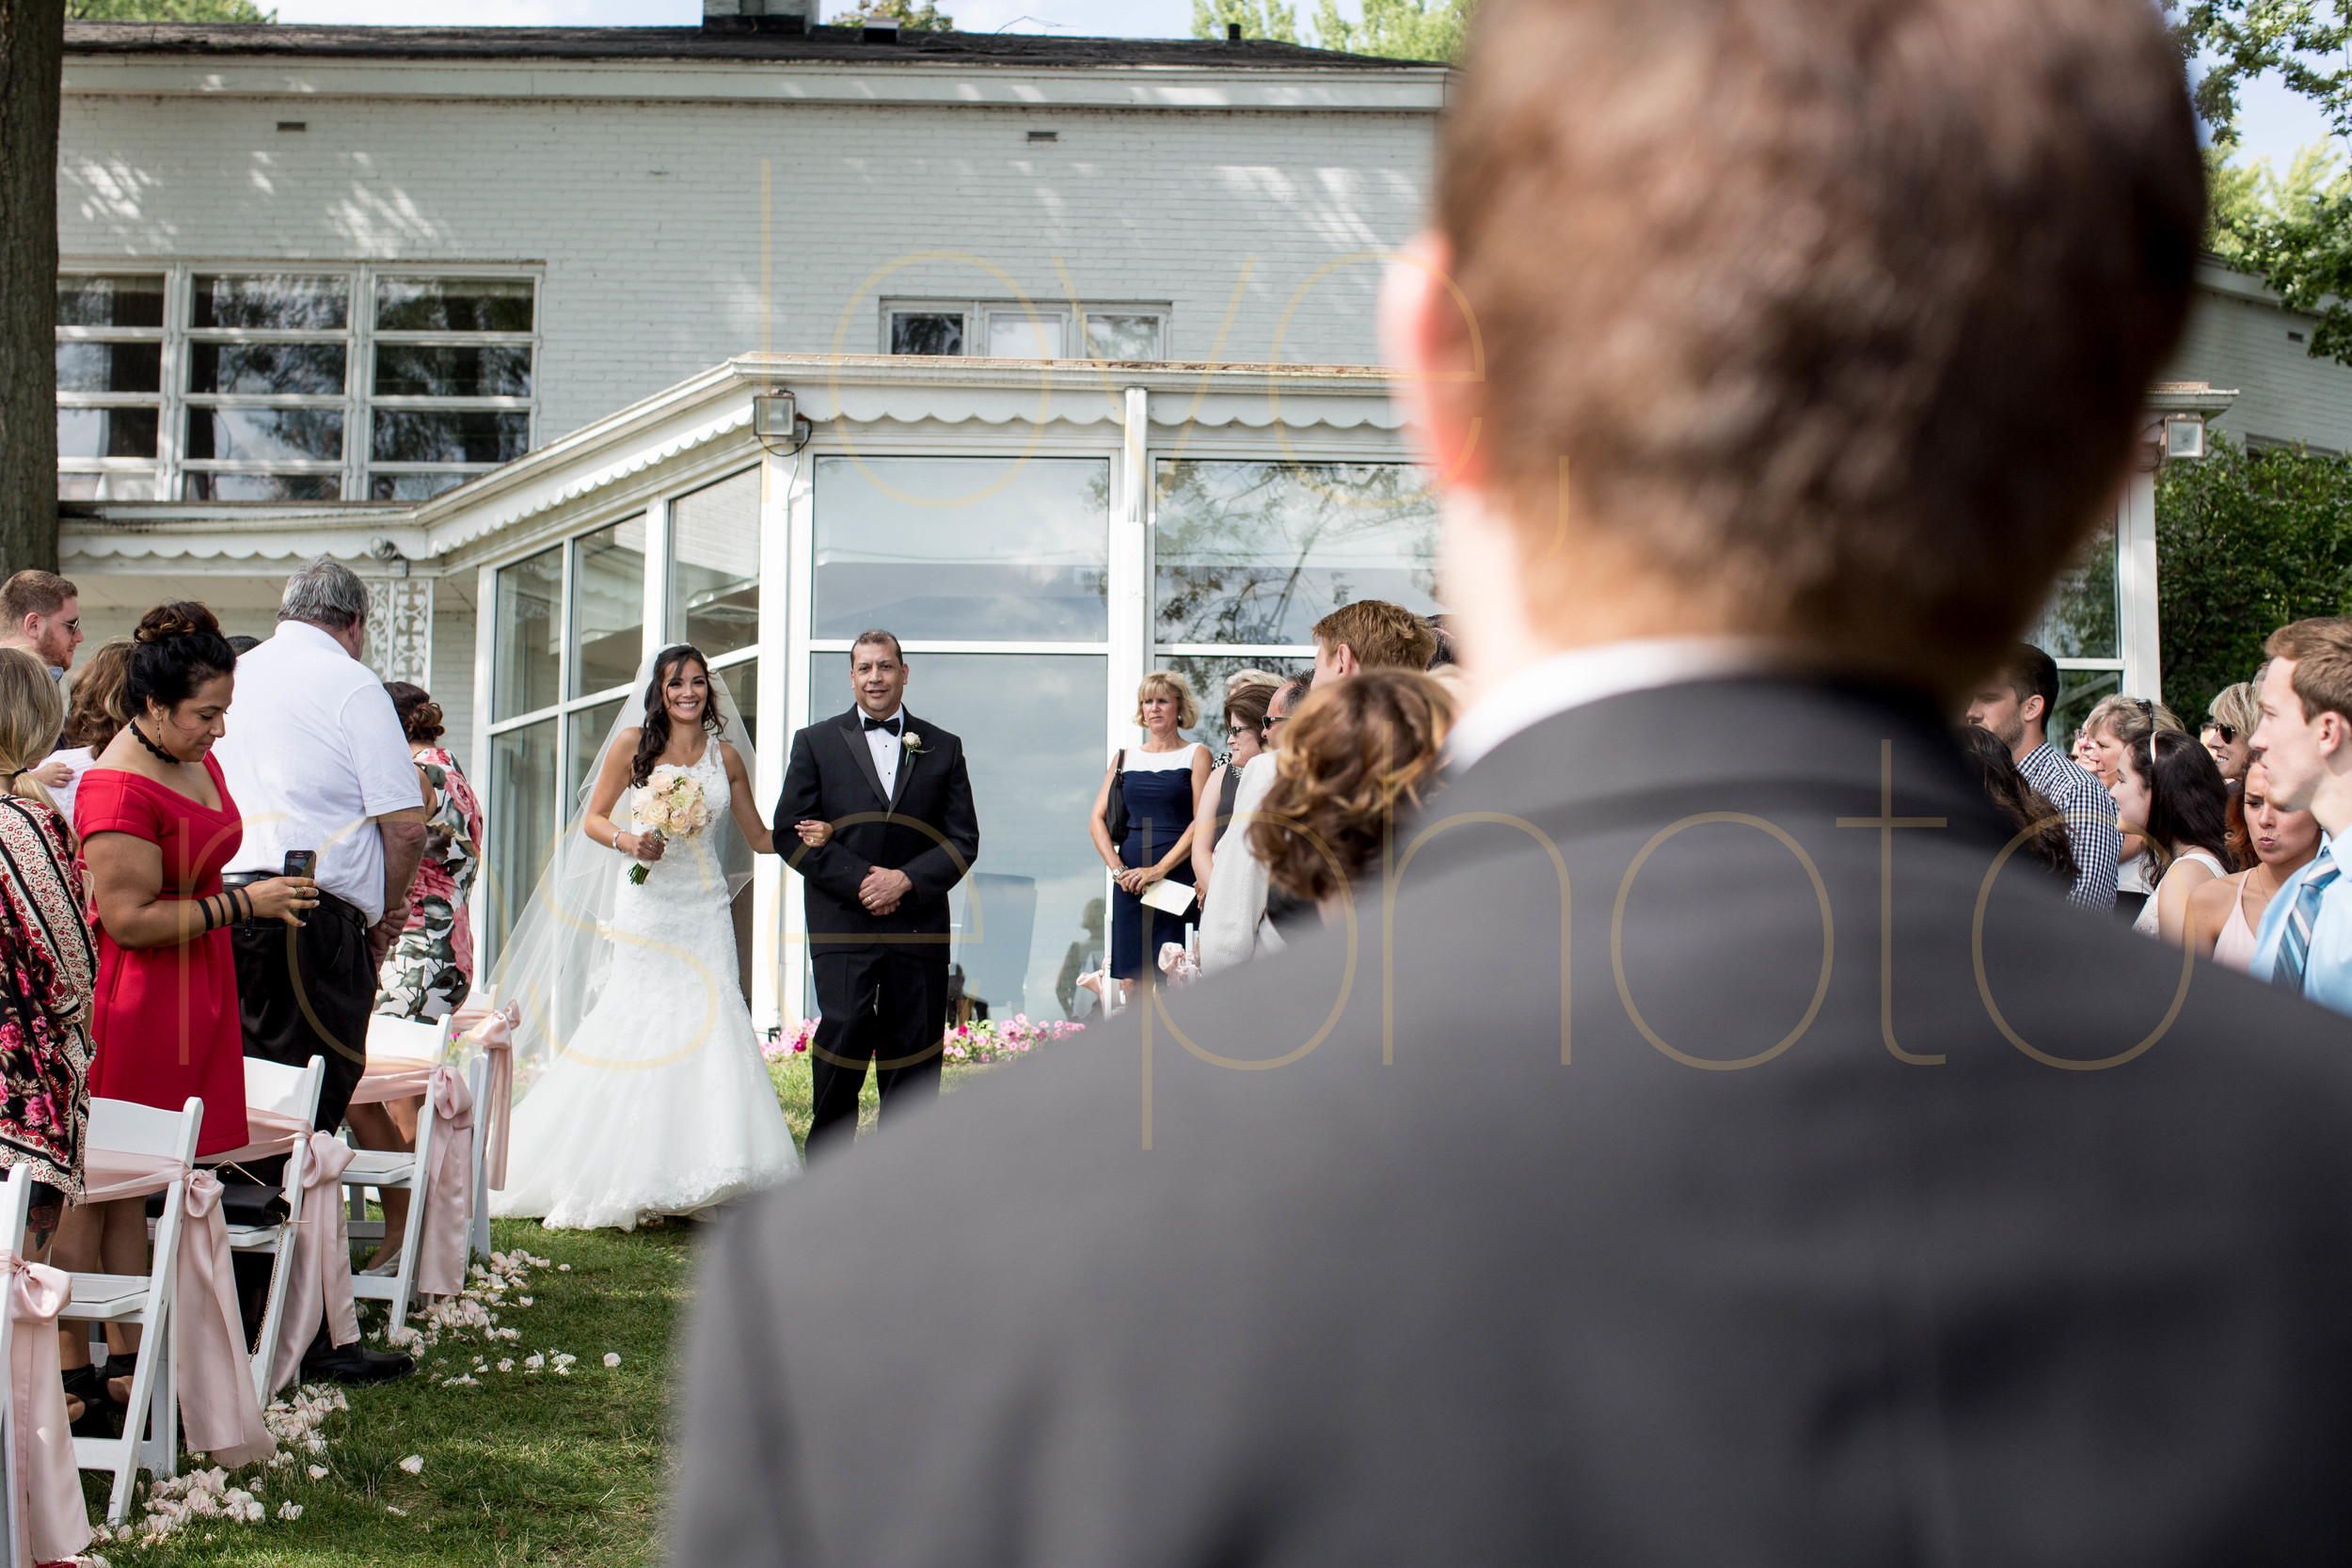 Claudia + Grant Heidel House Wiscon lake wedding best of chicago wedding photographers -20.jpg